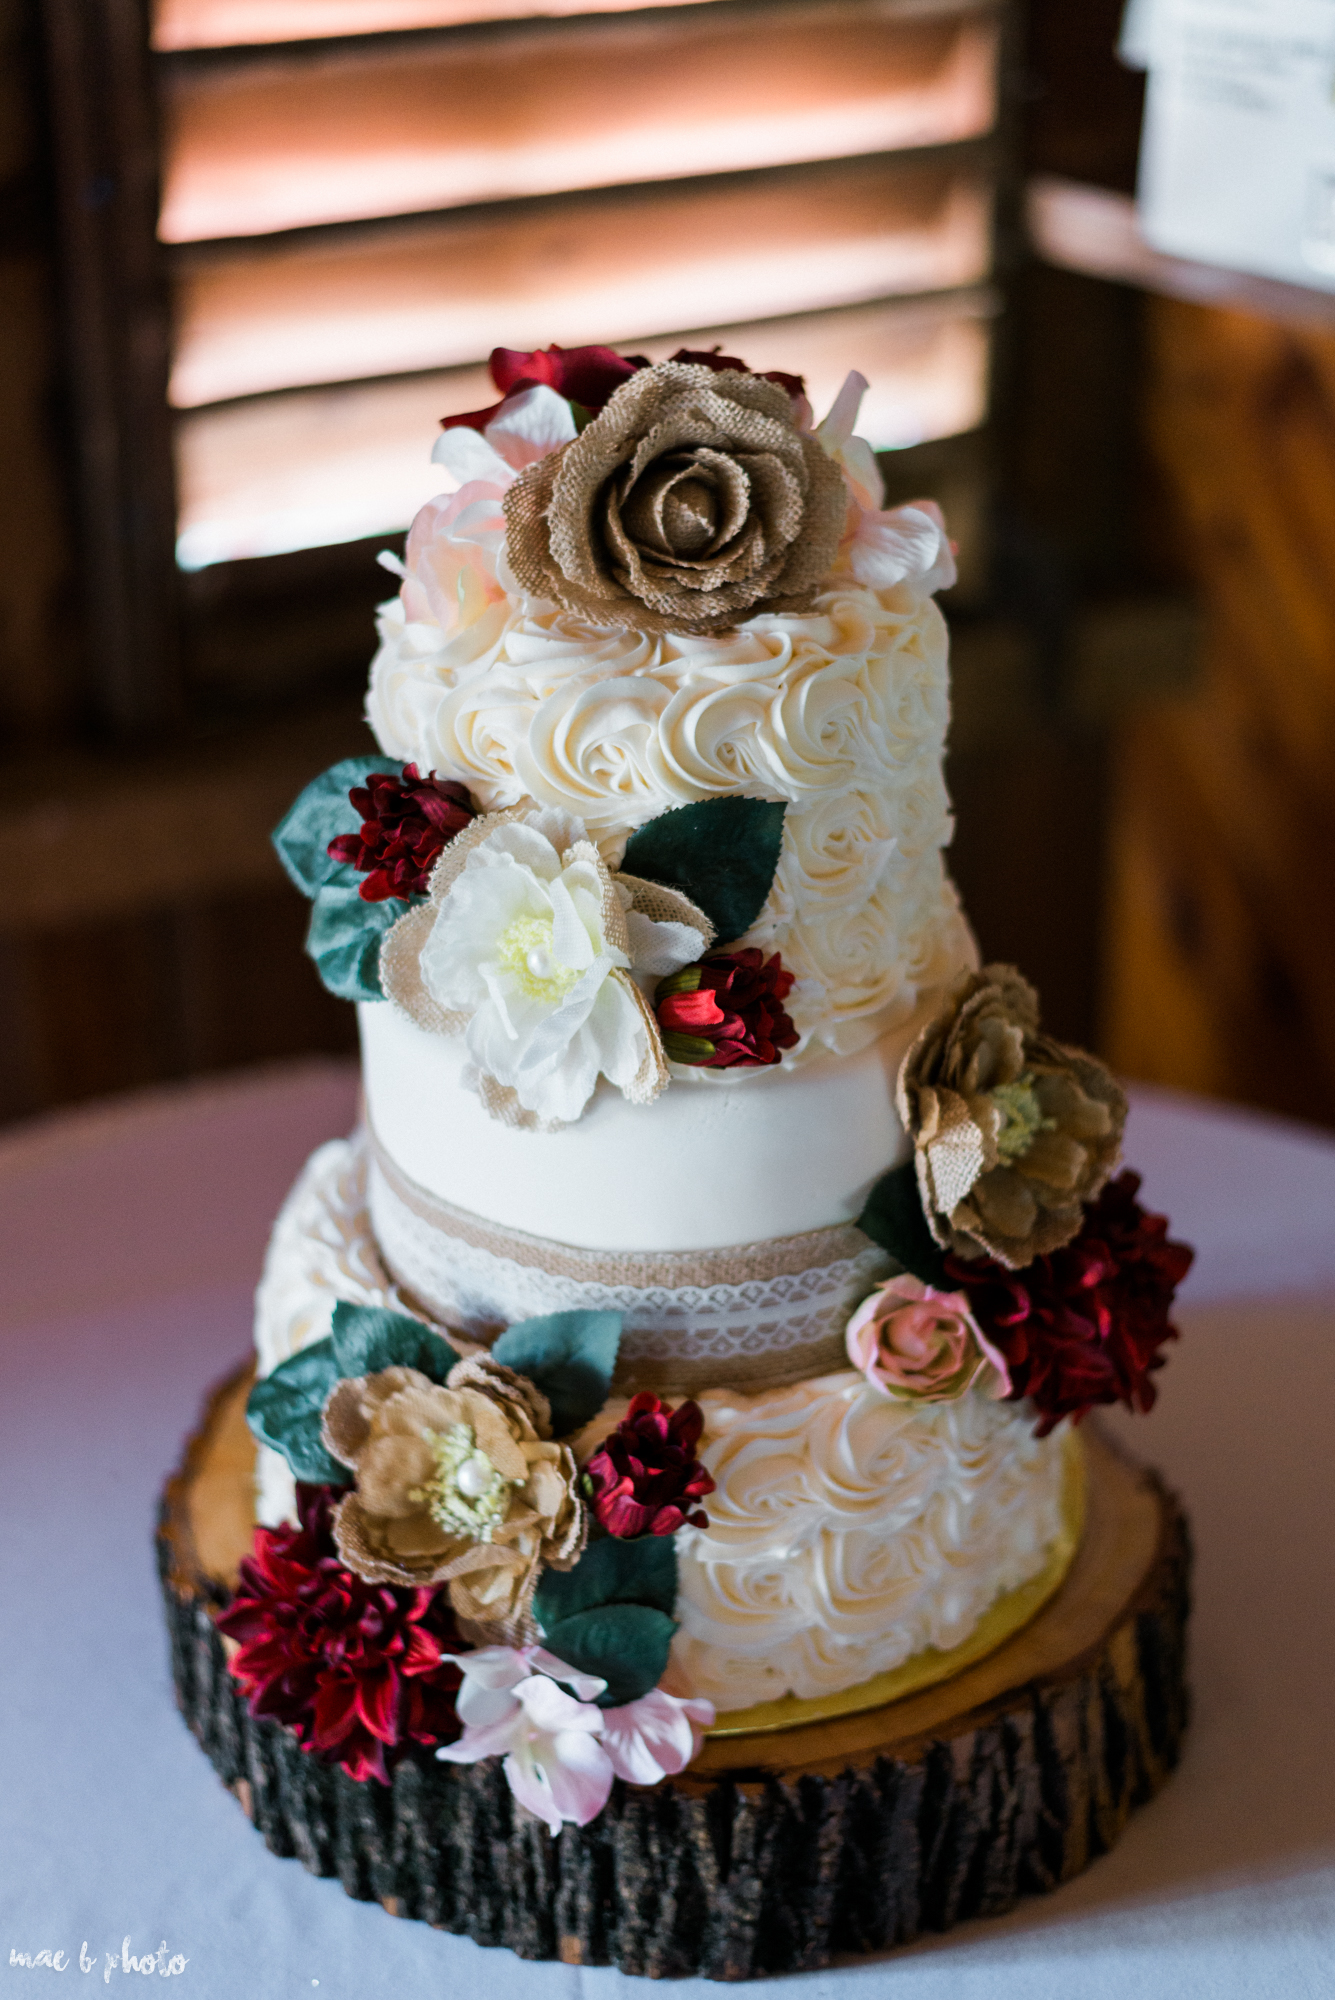 Amber & Kyle's Rustic Barn Wedding at SNPJ in Enon Valley, PA by Mae B Photo-82.jpg